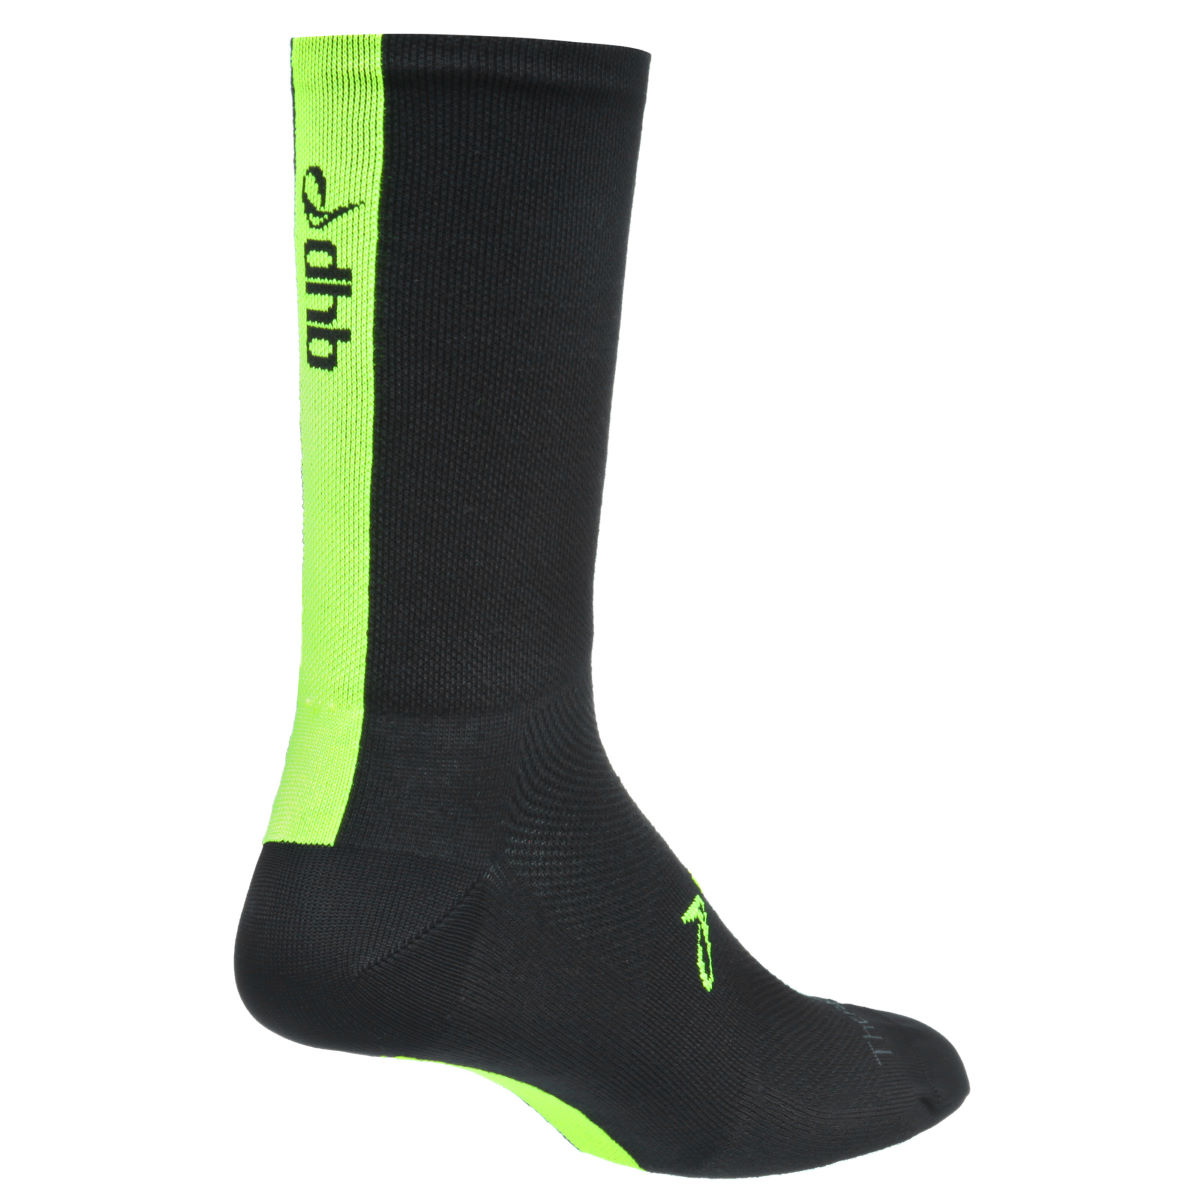 Calcetines dhb Aeron Thermolite - Calcetines de ciclismo